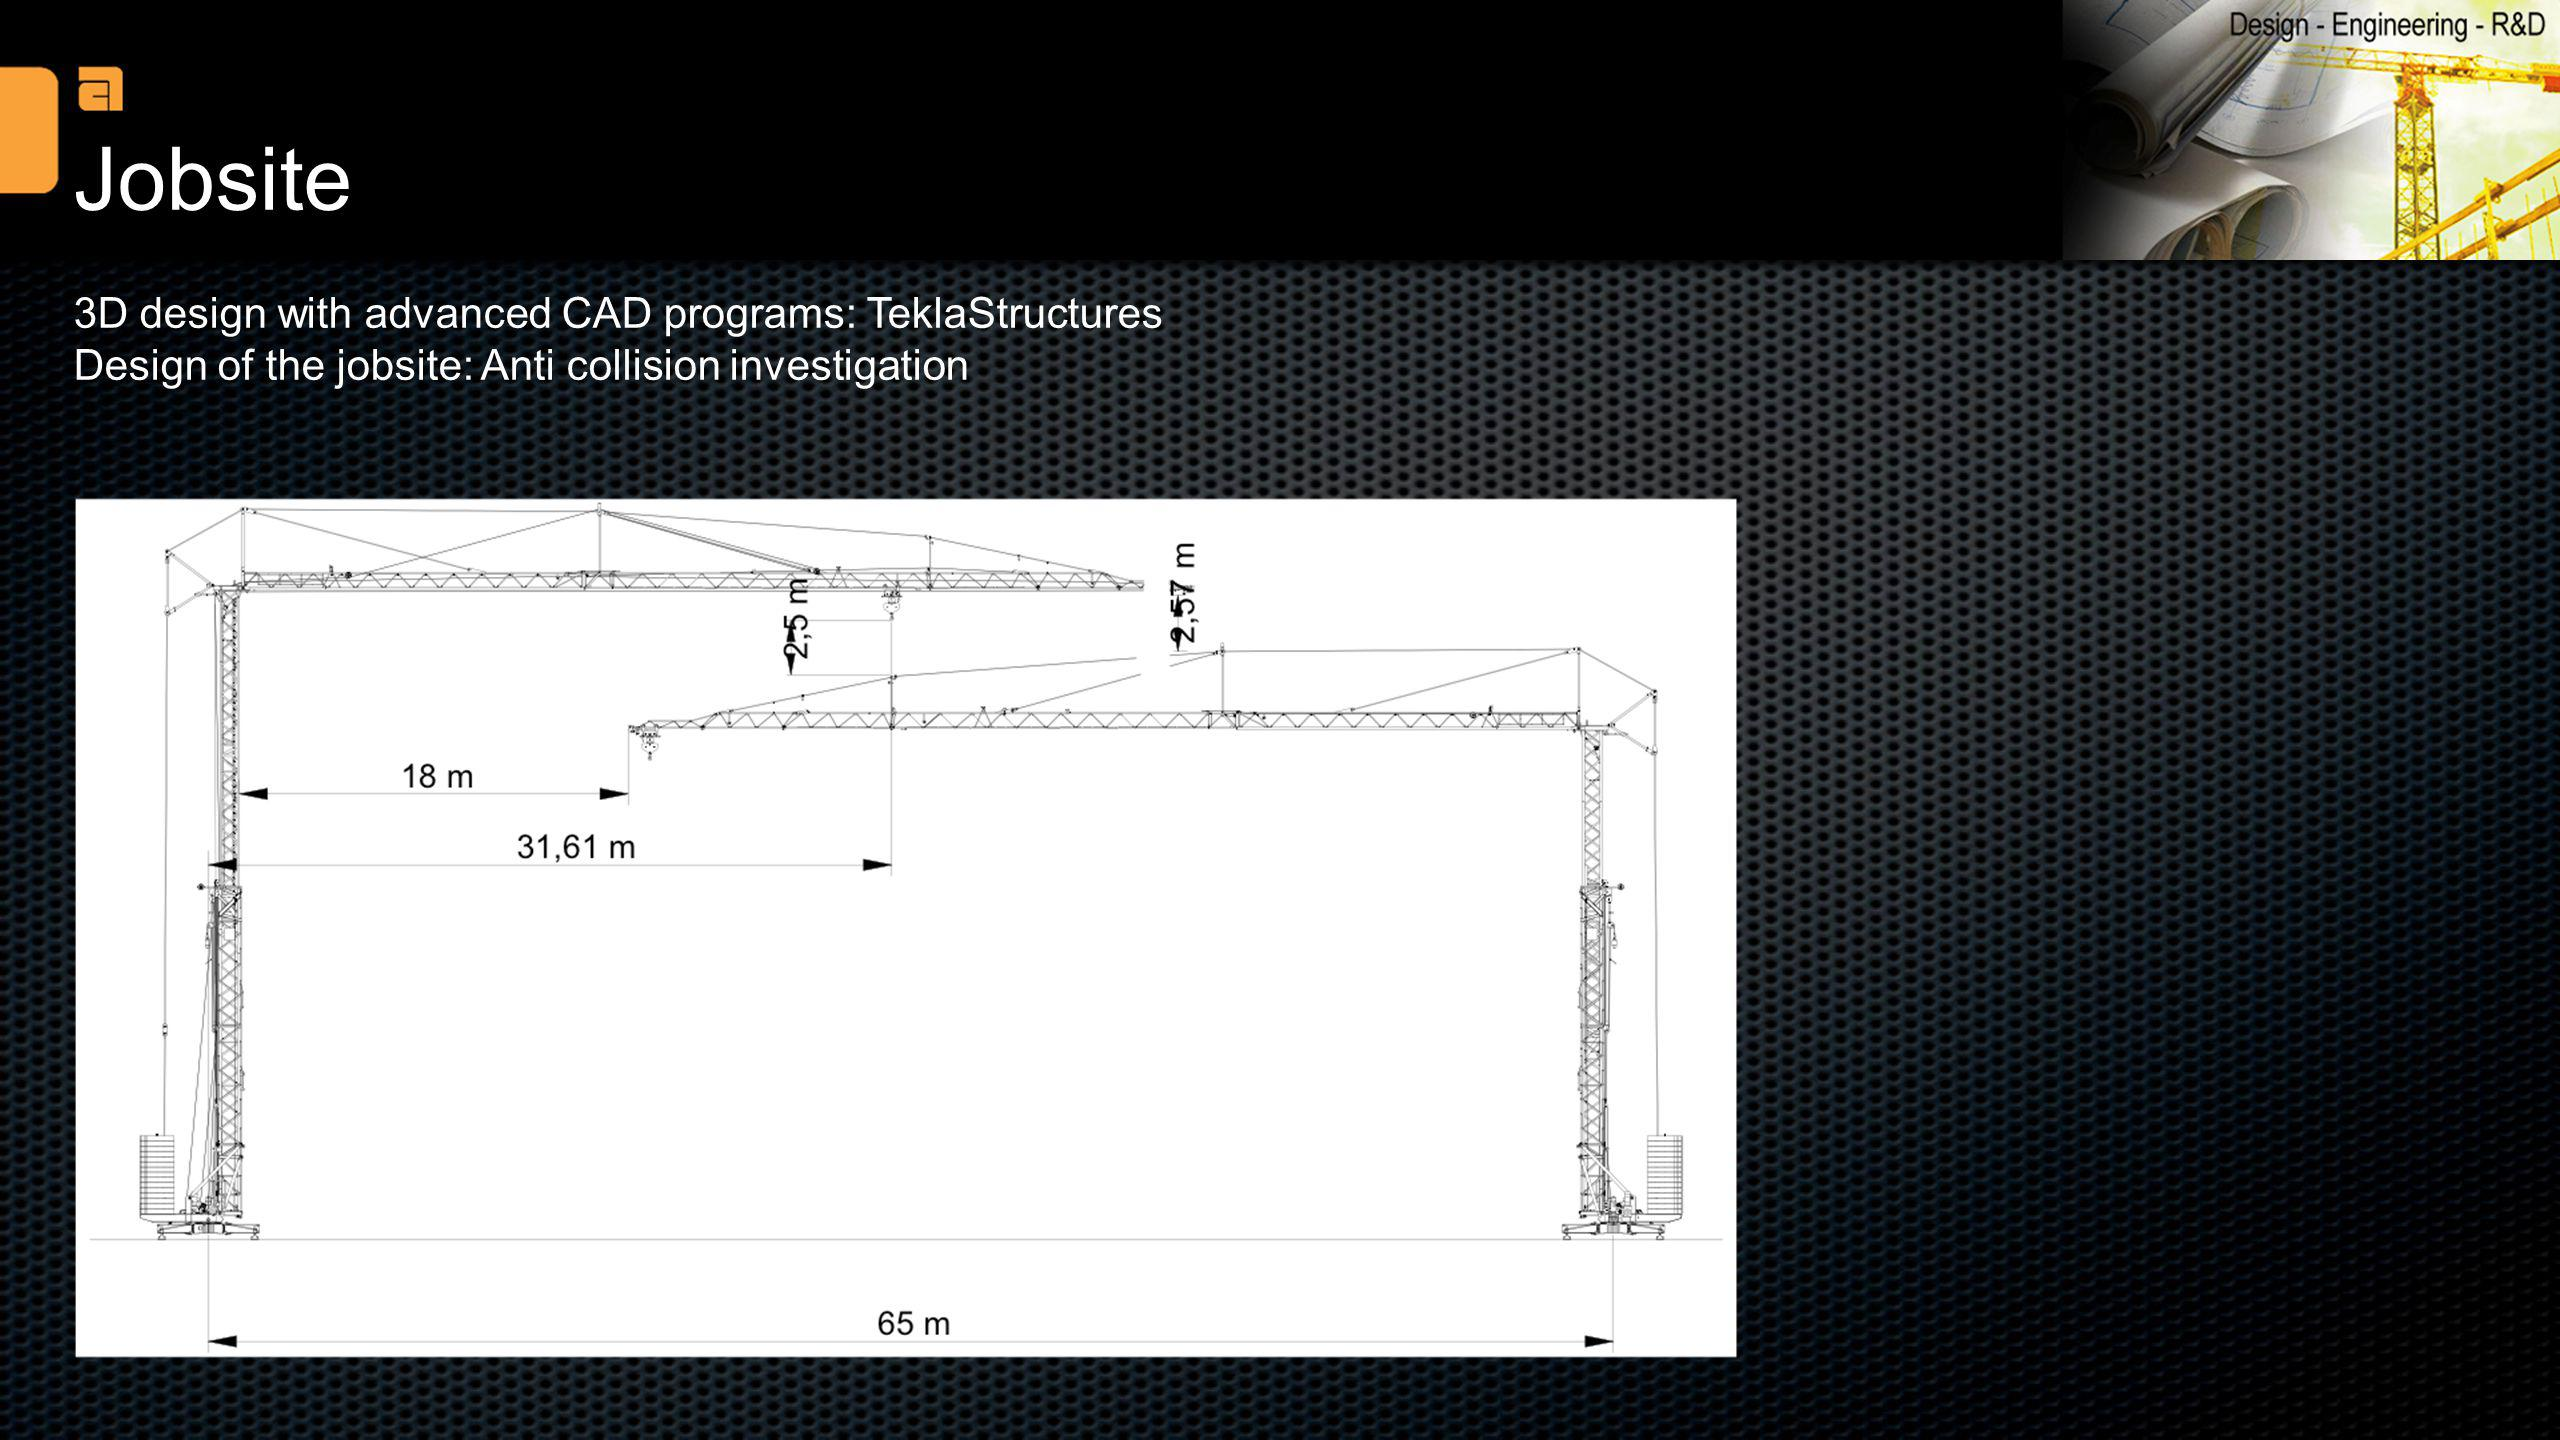 3D design with advanced CAD programs: TeklaStructures Design of the jobsite: Anti collision investigation Jobsite